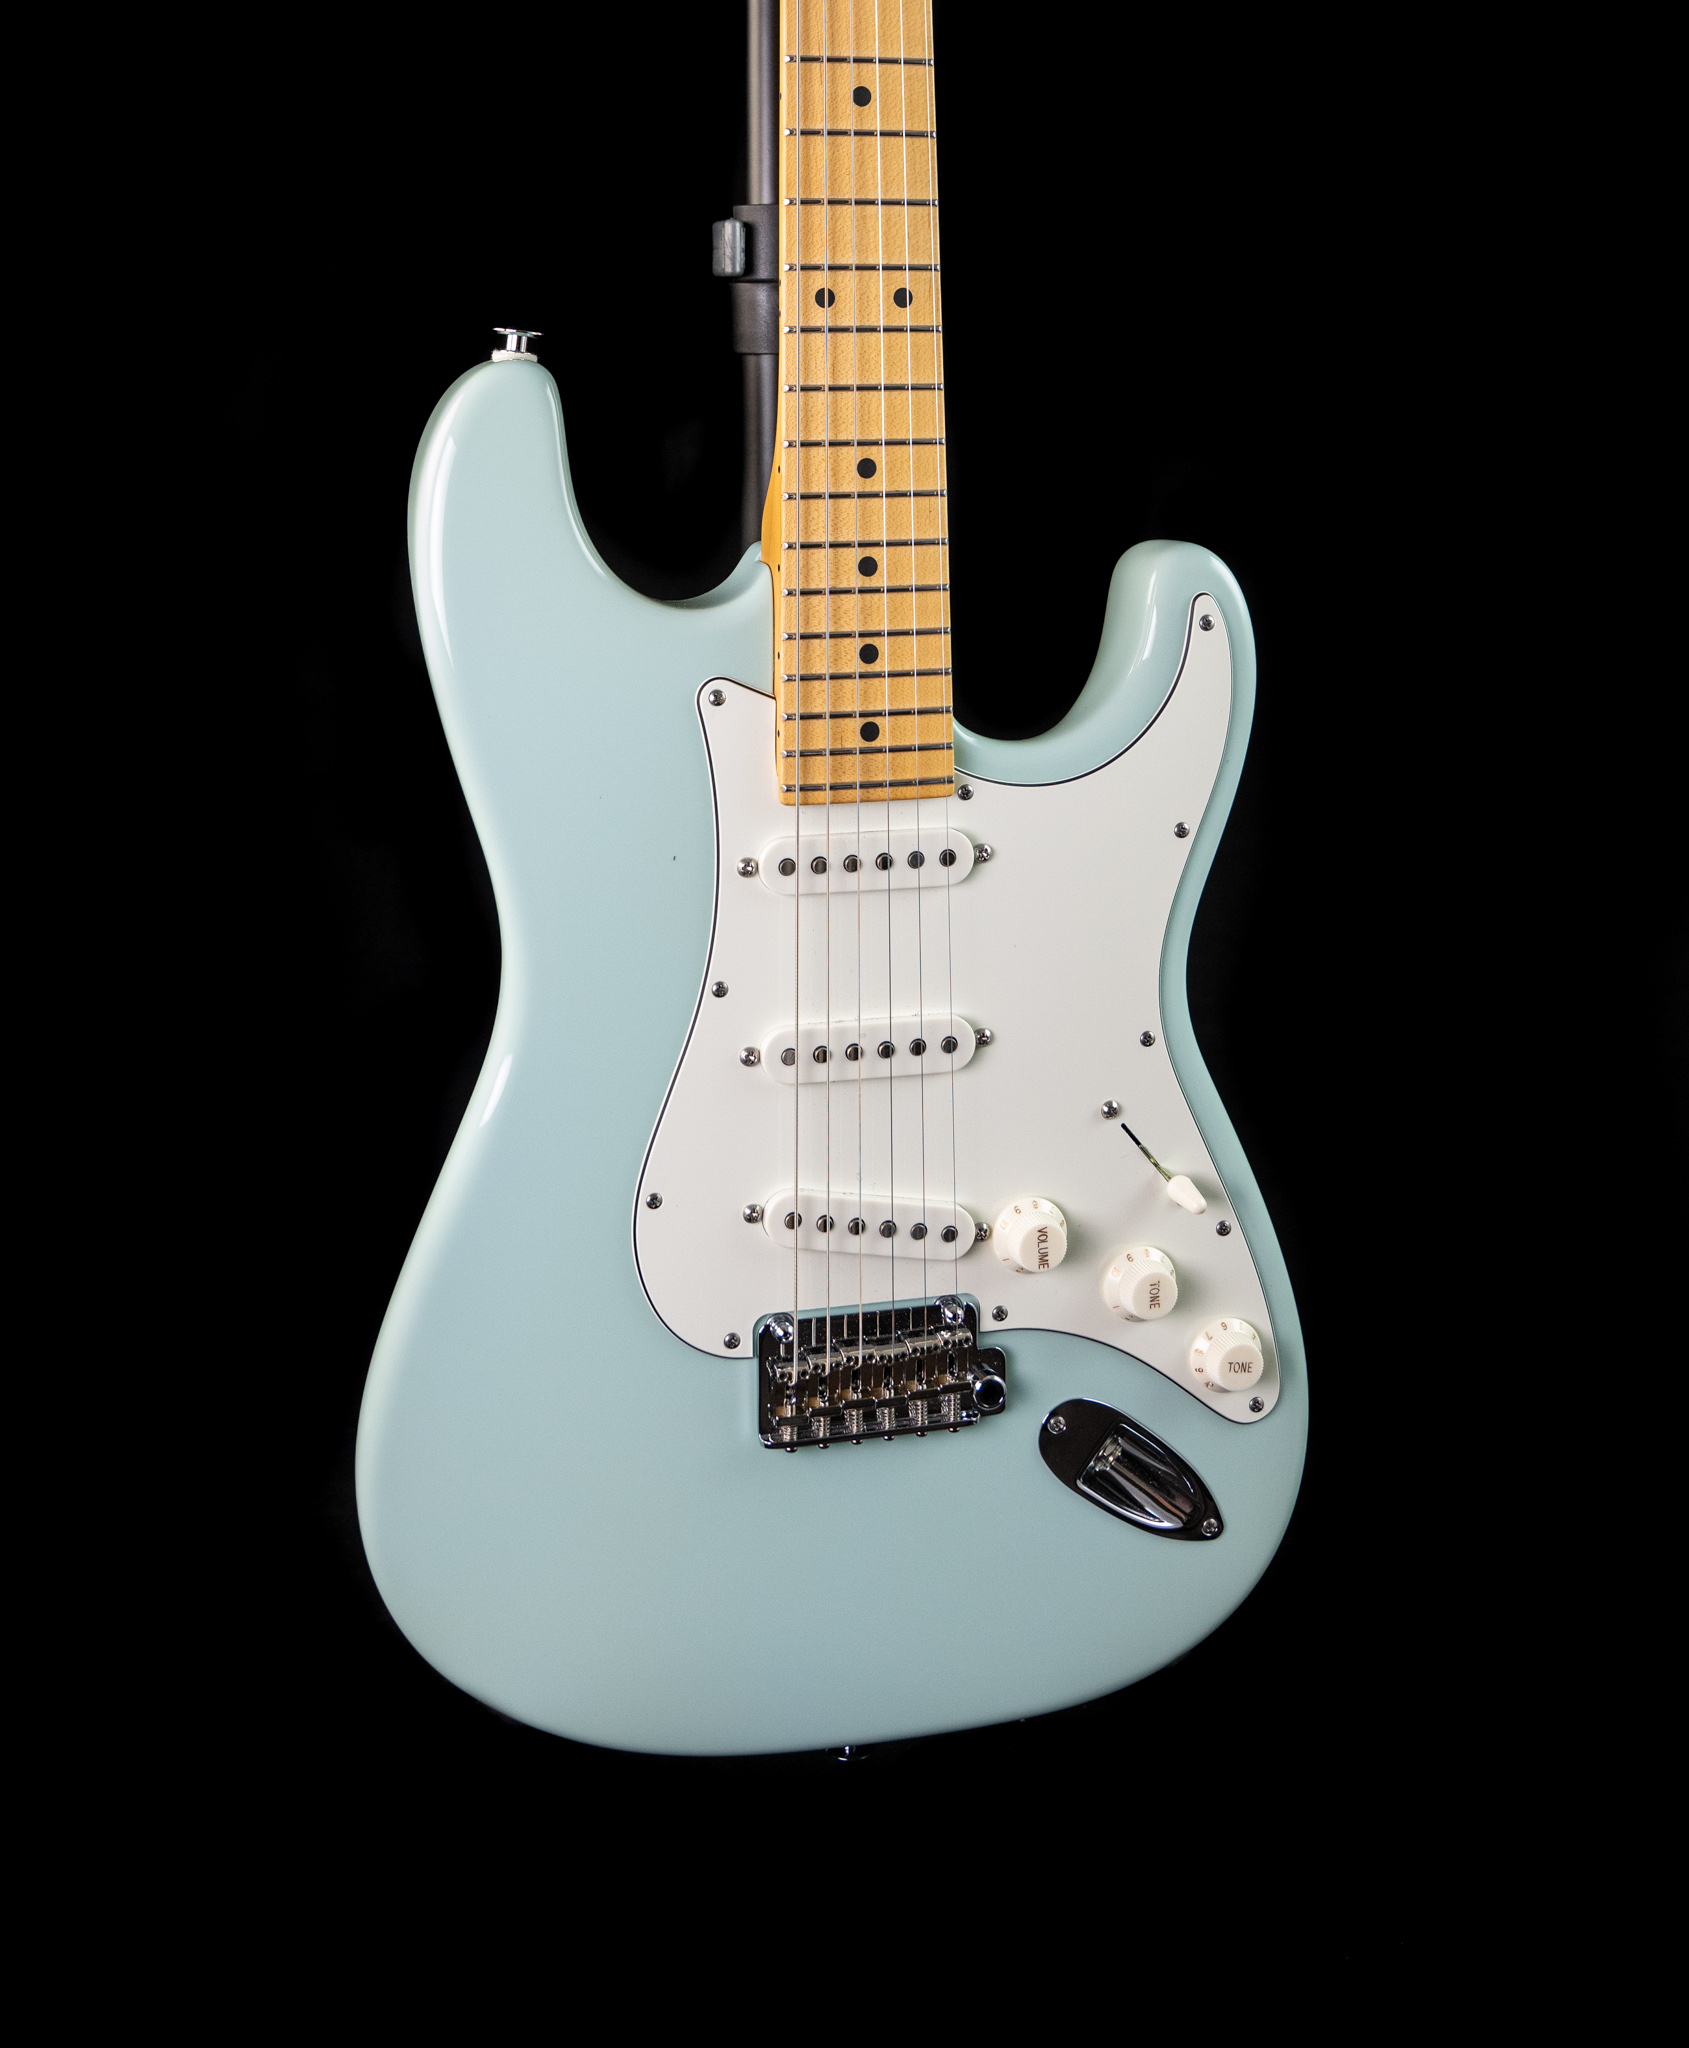 Suhr Classic S in Sonic Blue